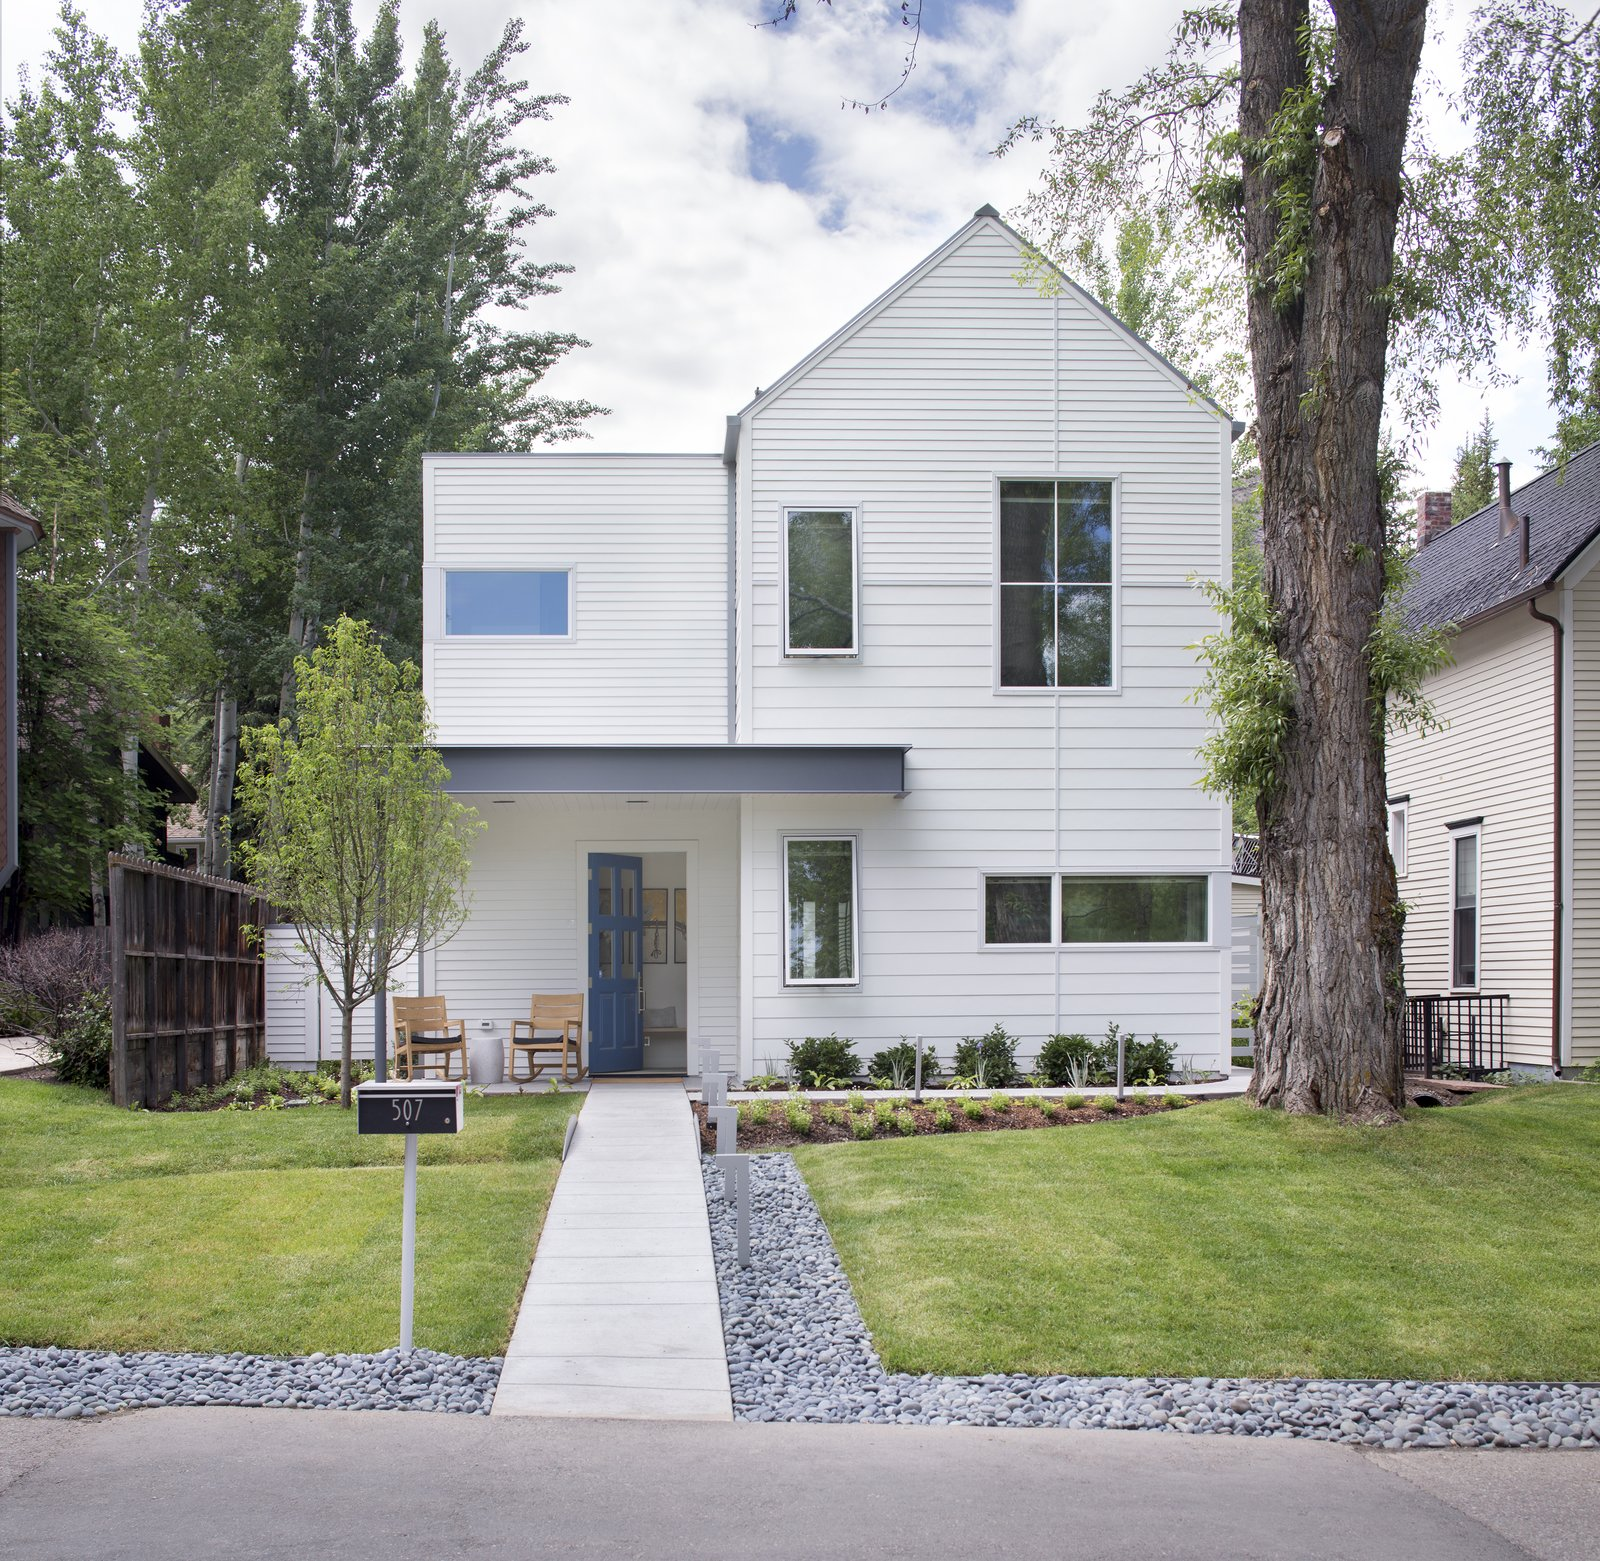 Exterior, House Building Type, Wood Siding Material, and Gable RoofLine  Game On by rowland + broughton